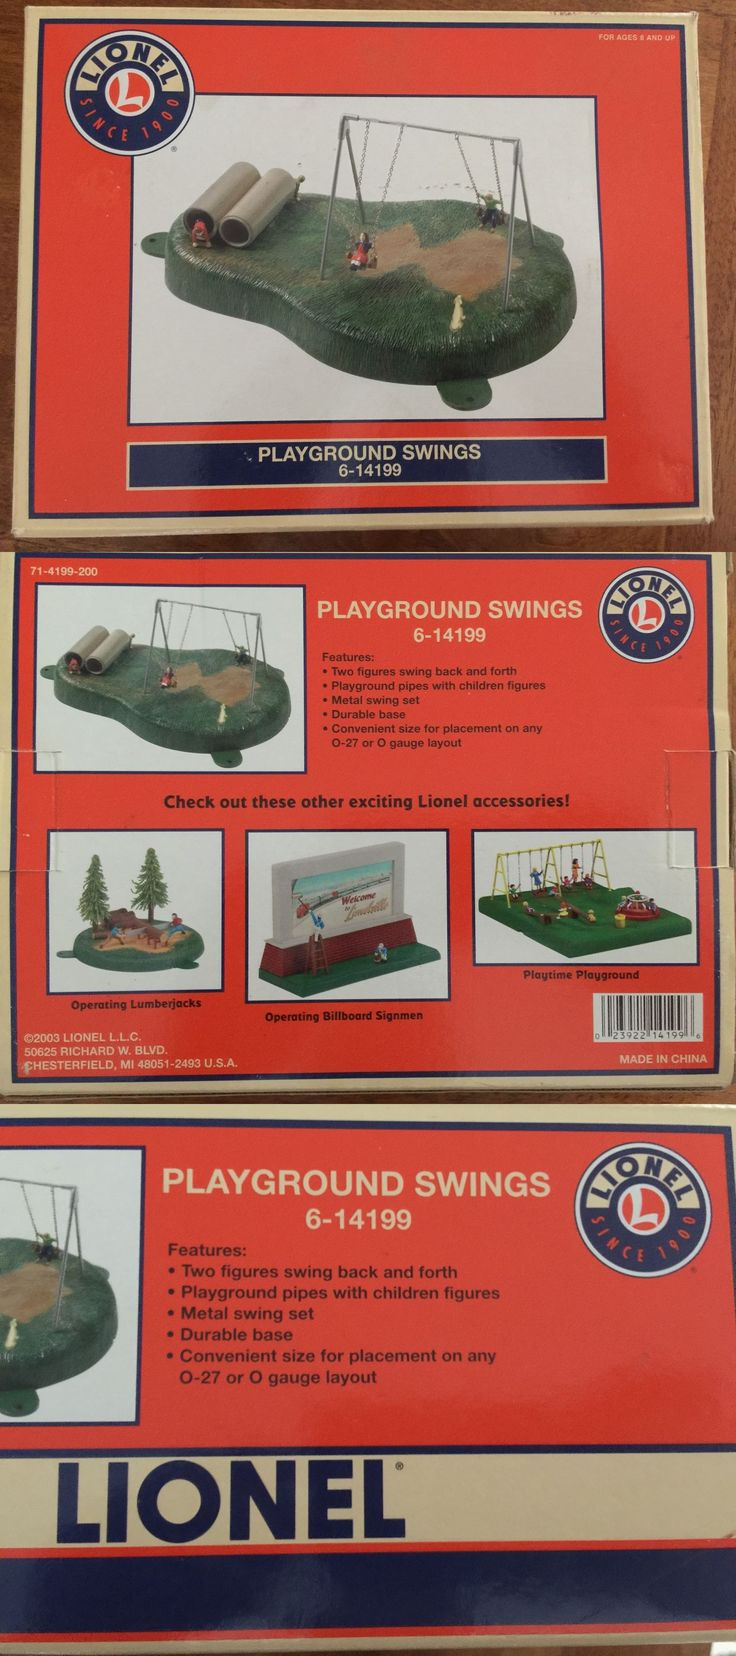 Swing sets wayfair metal amp wooden swingsets for kids - Figures And People 81053 Lionel Playground Swings 6 14199 New In Box Swinging